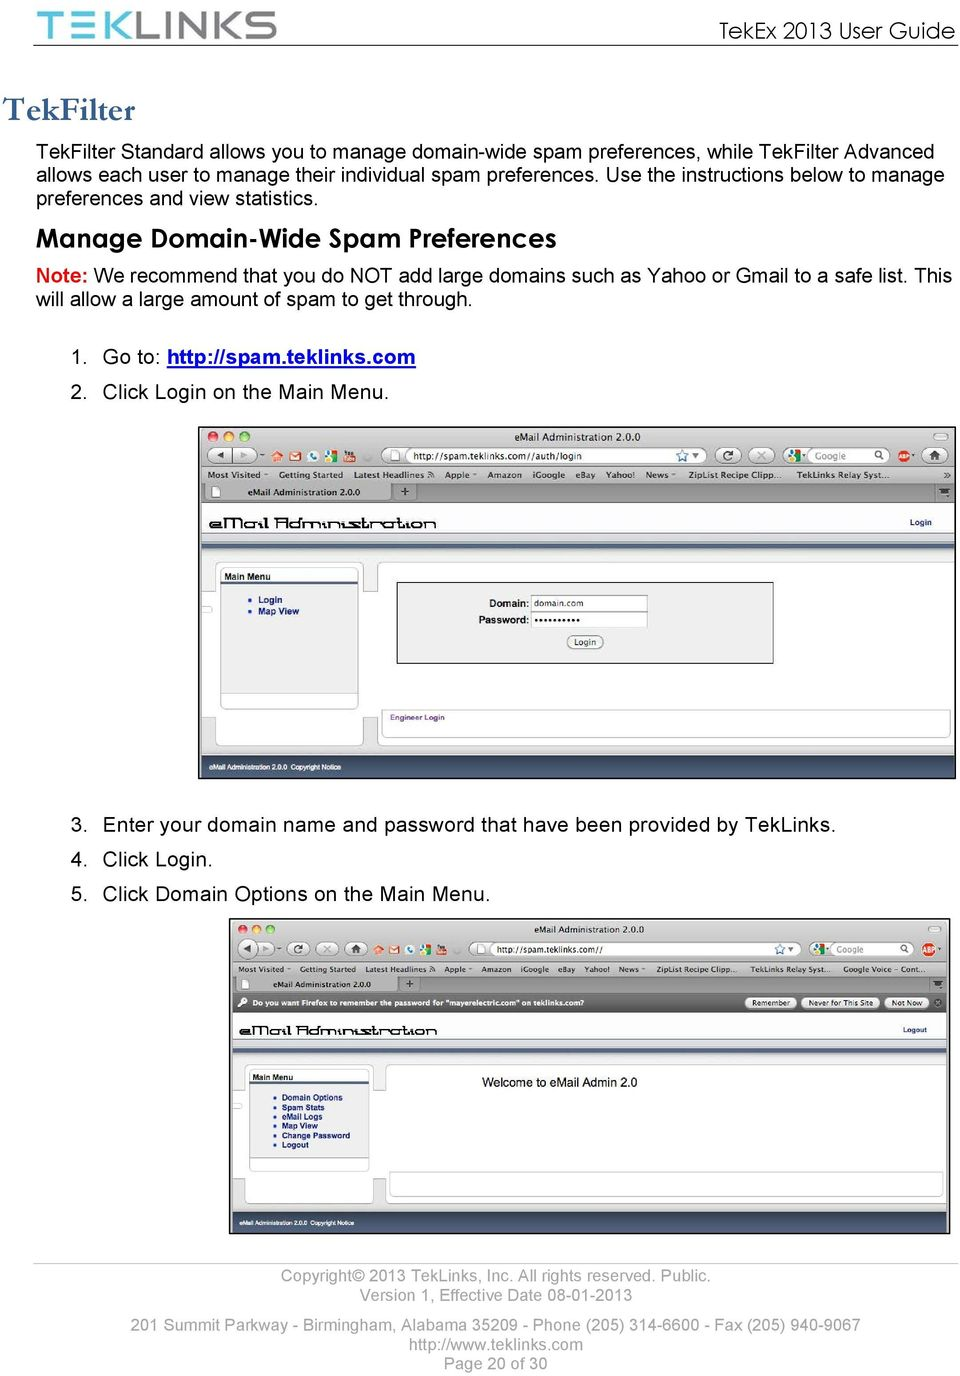 Manage Domain-Wide Spam Preferences Note: We recommend that you do NOT add large domains such as Yahoo or Gmail to a safe list.